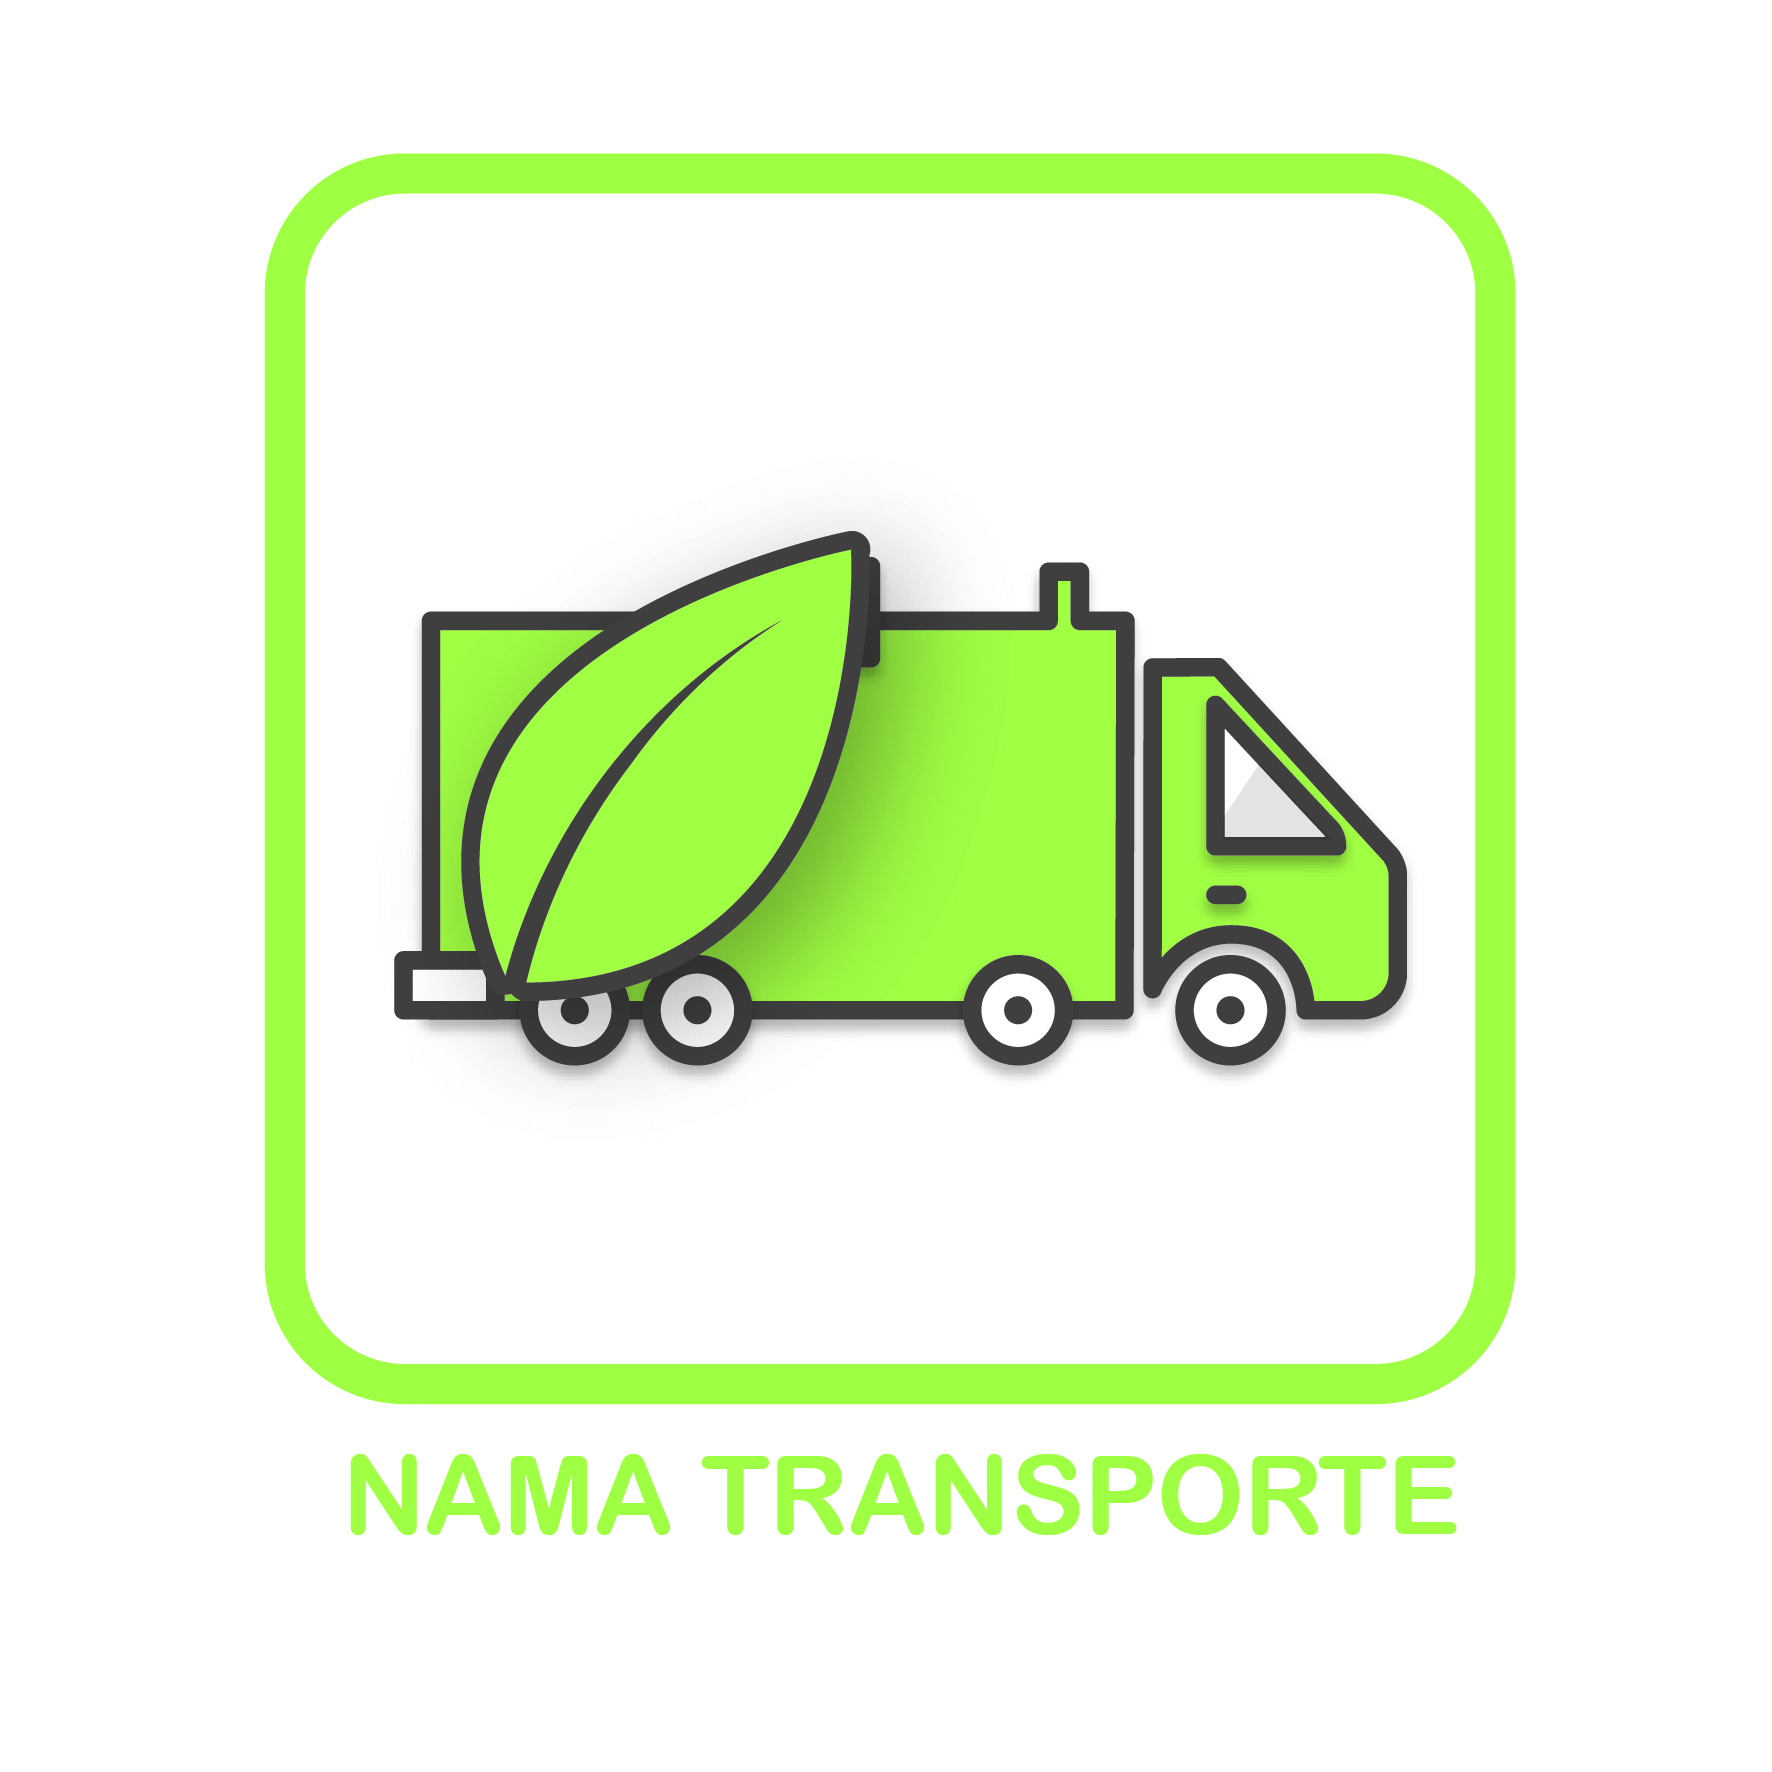 Icon of 03 NAMA Transporte